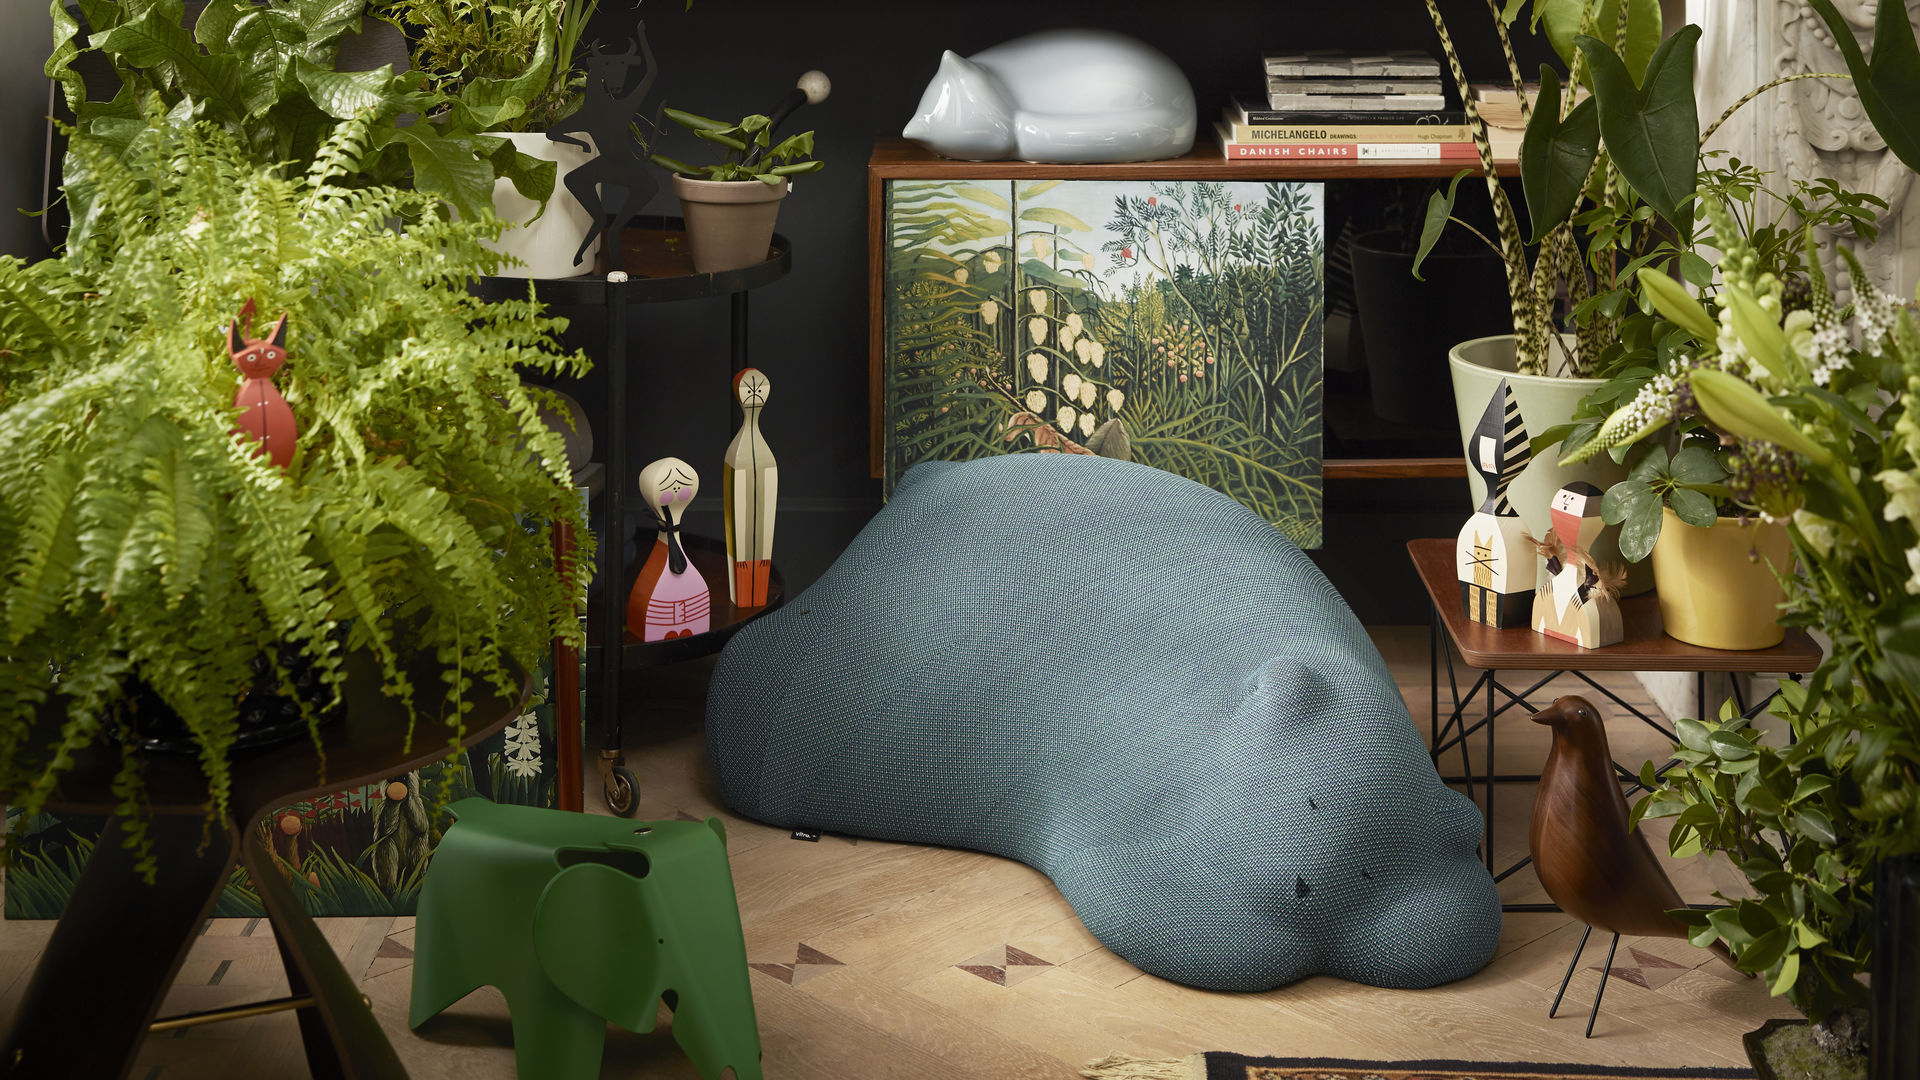 Resting Animals Bear Cat Bird Wooden Dools L'Oiseau Eames House Bird Walnut Eames Elephant small Butterfly Stool_Accessories Jungle 2018_web_16-9